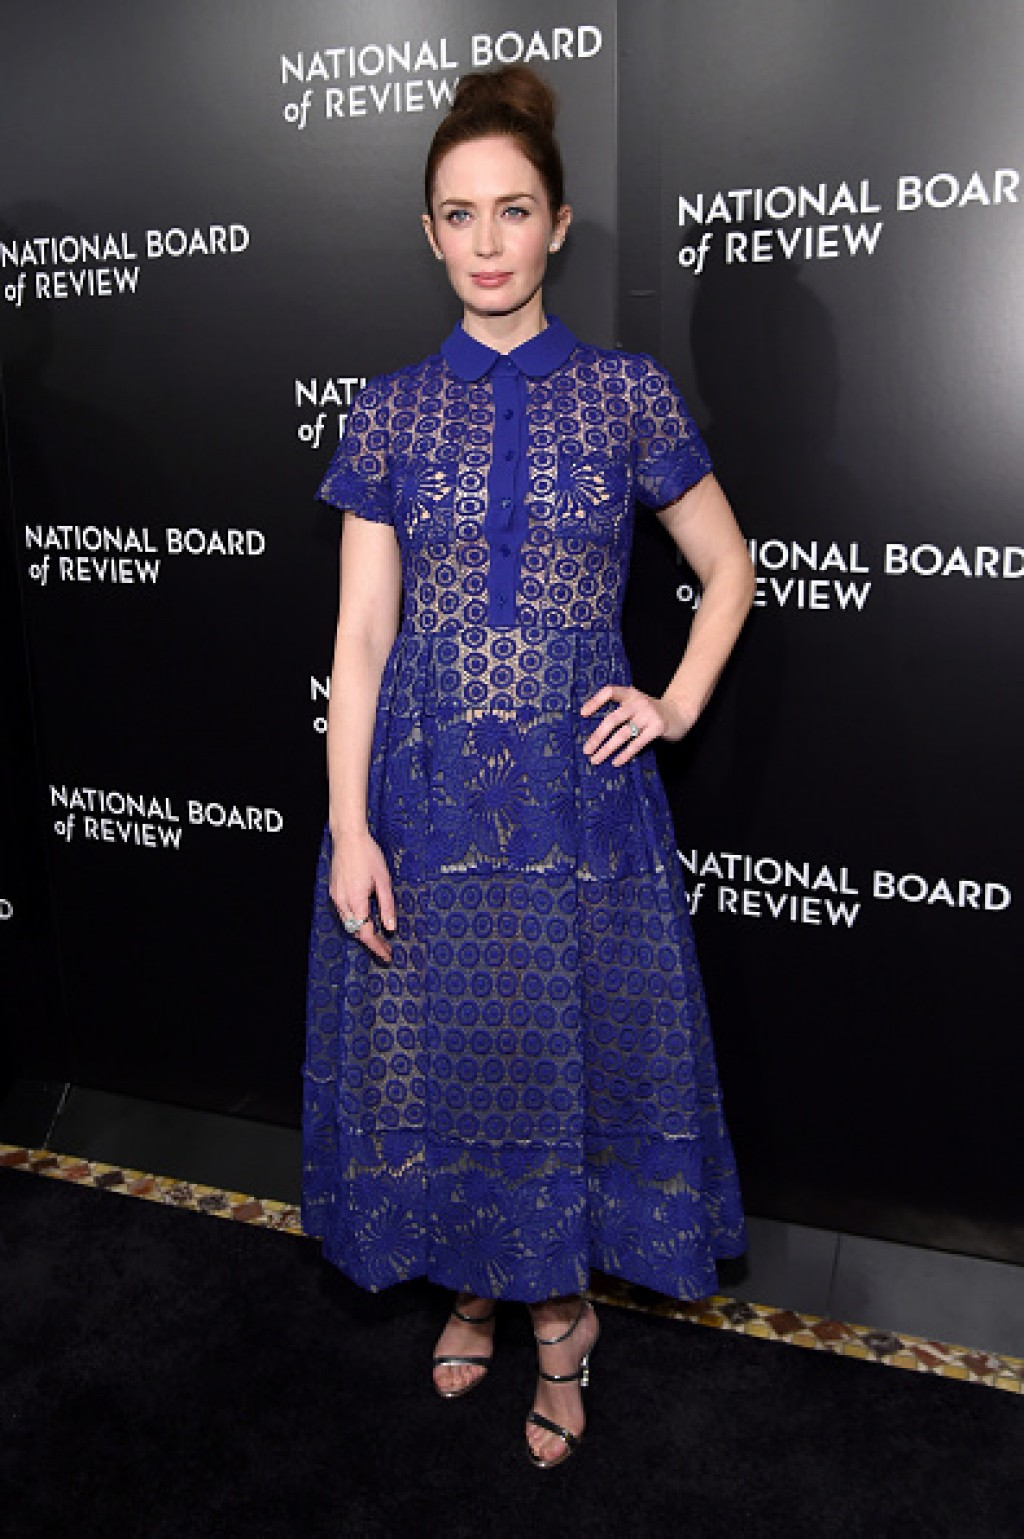 Emily-Blunt-016-National-Board-of-Review-Gala-Blue-dress